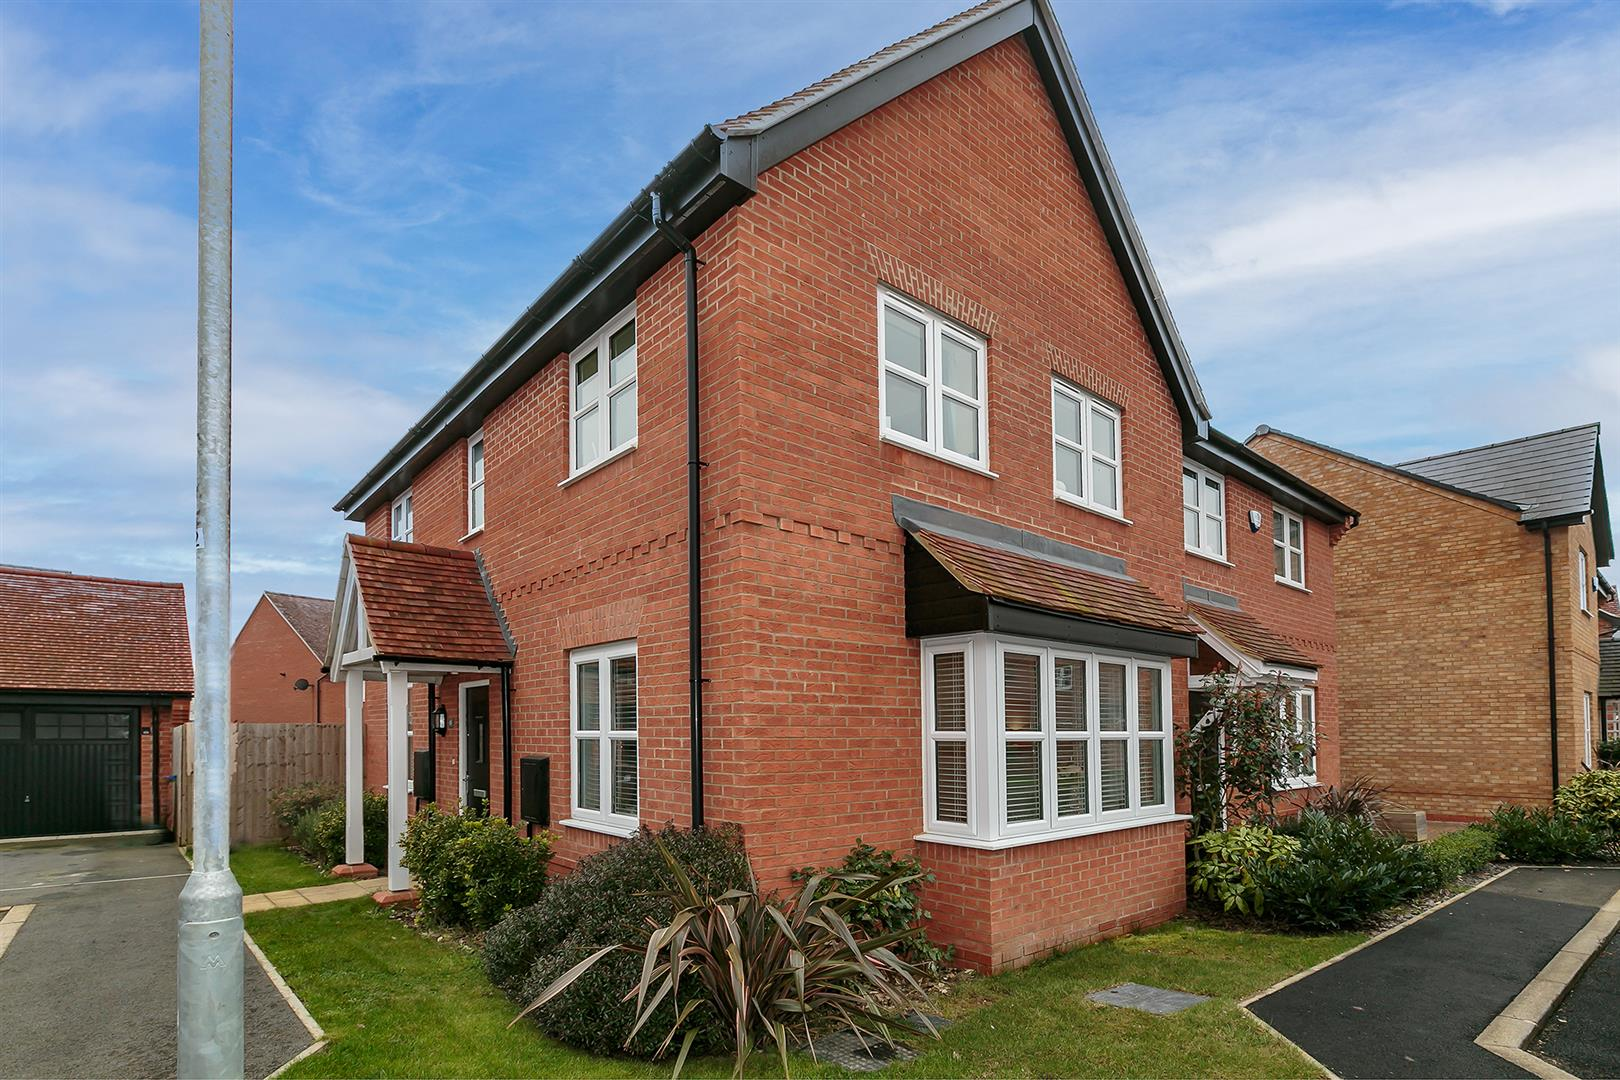 EXCELLENT 3 BEDROOM SEMI DETACHED HOUSE. This fantastic home is presented in immaculate condition throughout and is situated at the top of a cul-de-sac. The property briefly comprises: entrance hall, cloakroom, bright lounge, and well appointed kitchen/d